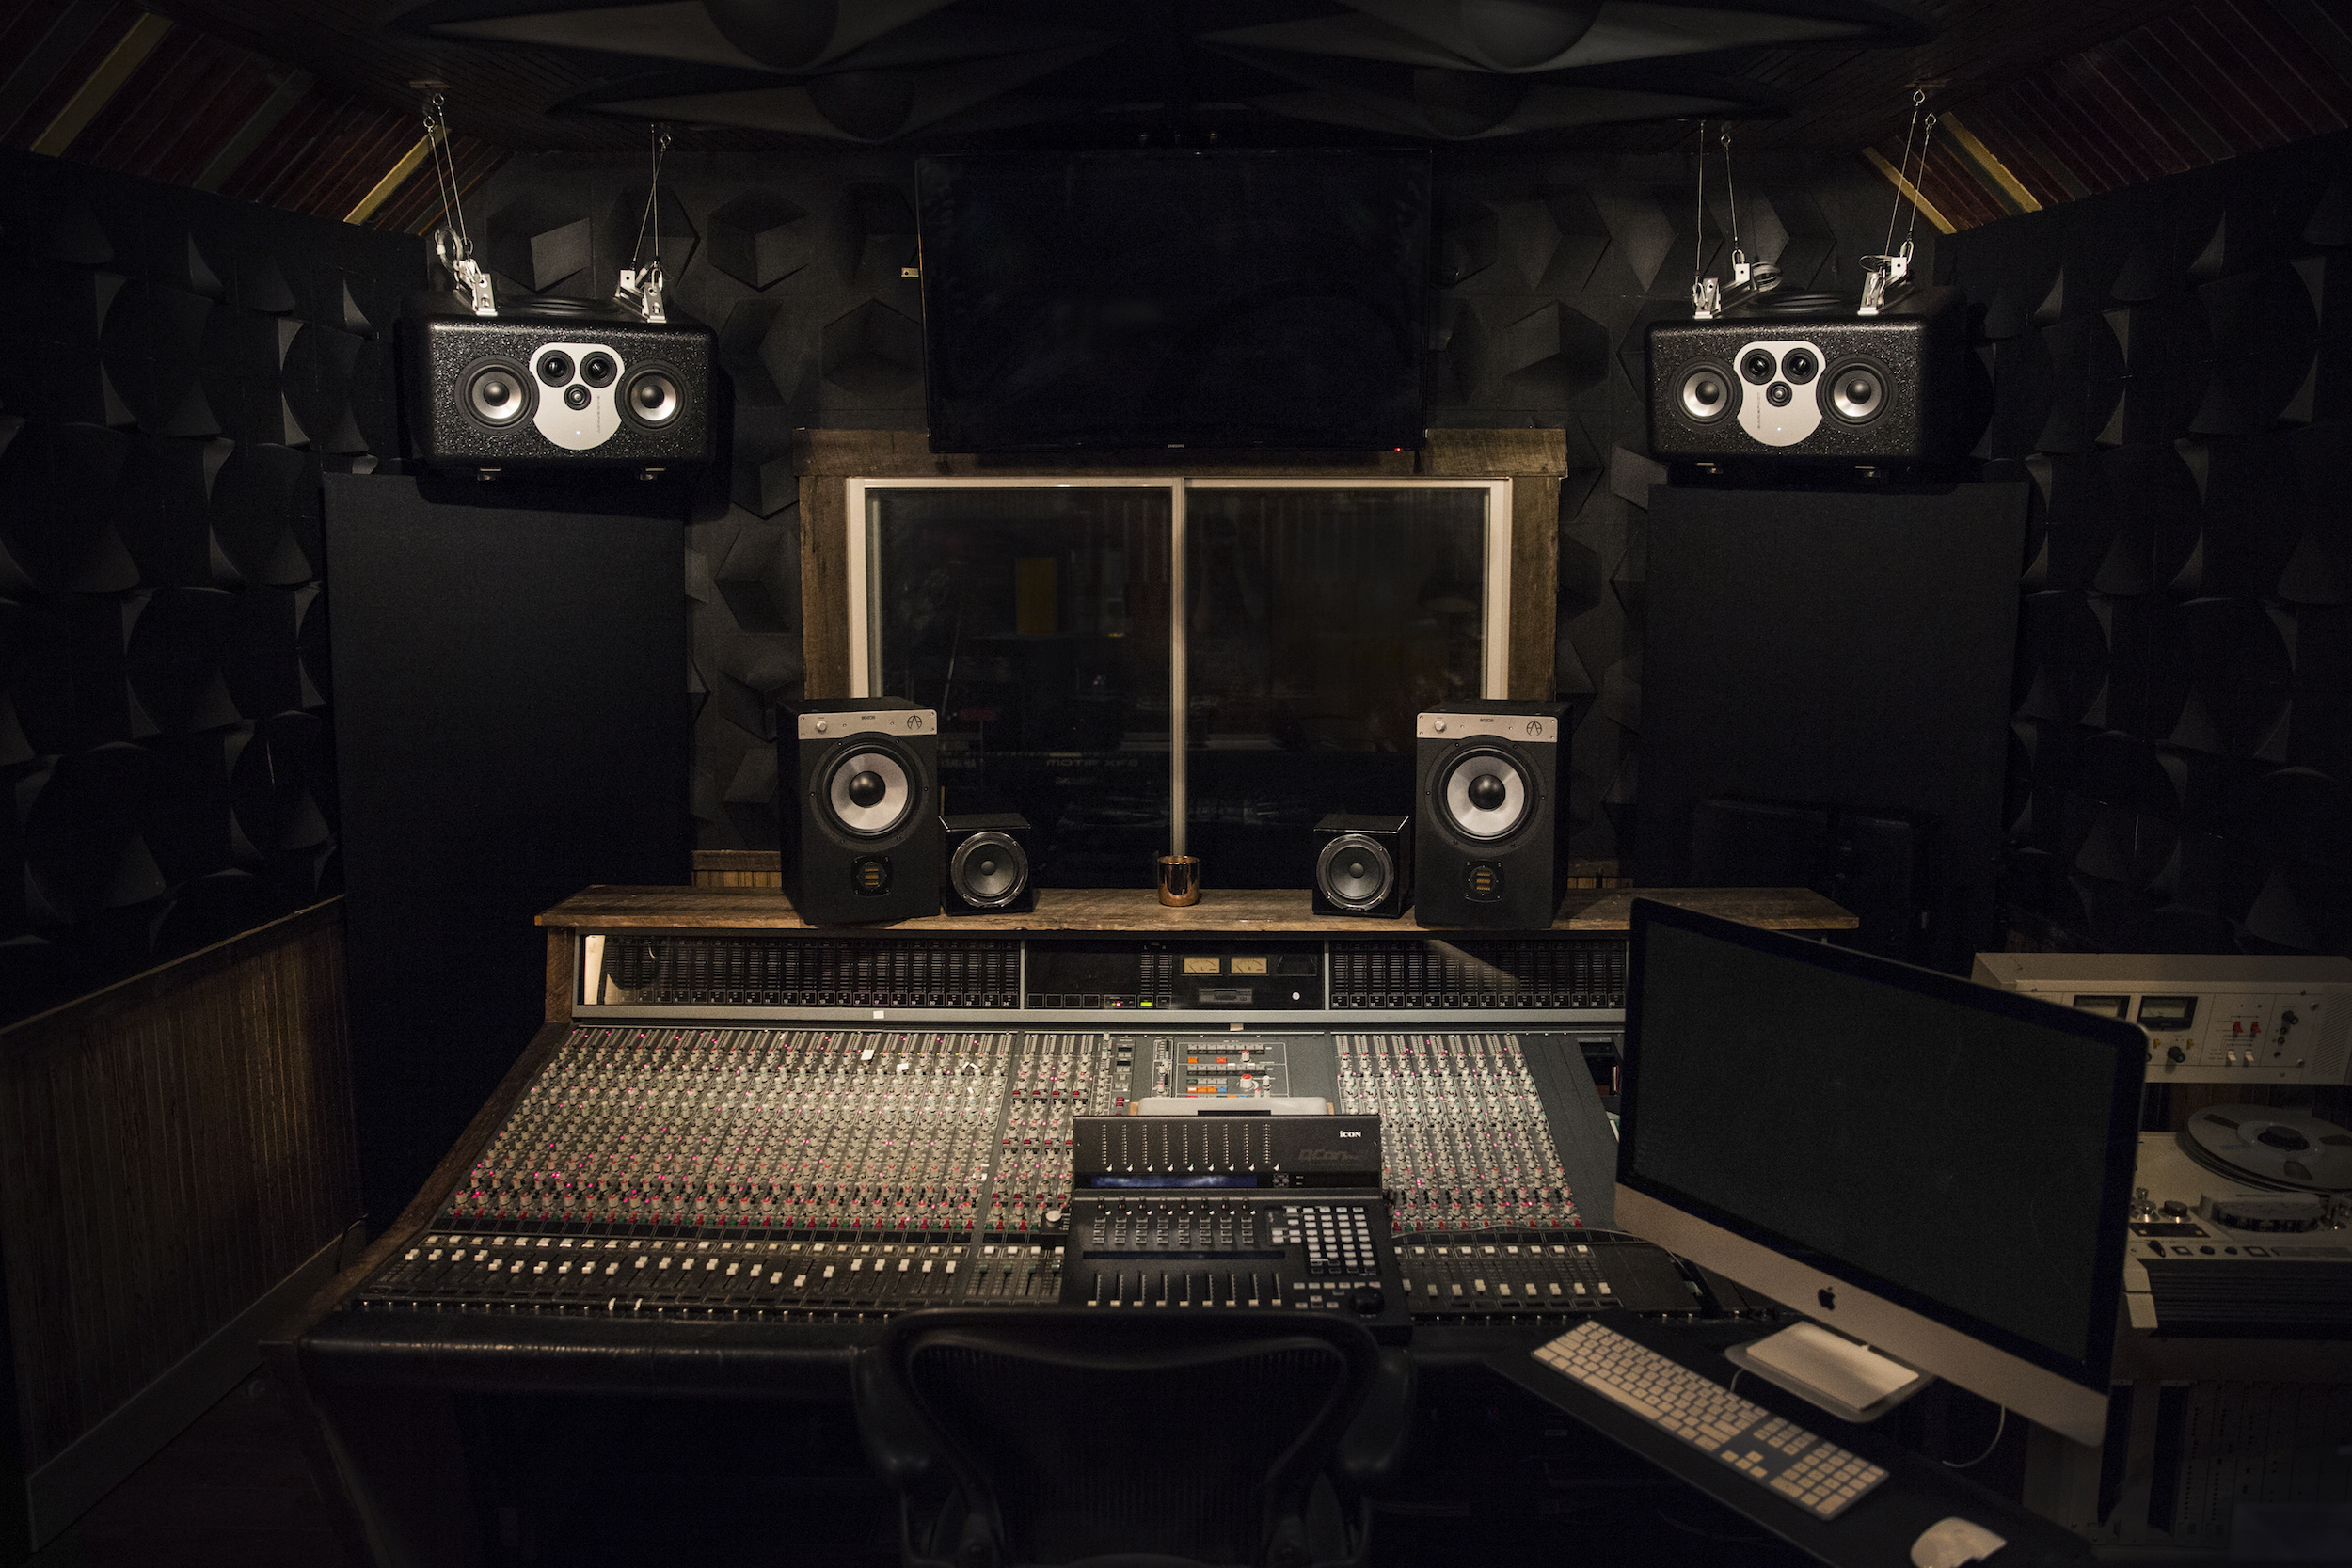 recording studio Gtr recording studio was founded by salvo riggi in 2009 since then gtr recording studio is helping hundreds of artists, singers and film makers to achieve their goals and big dreams.